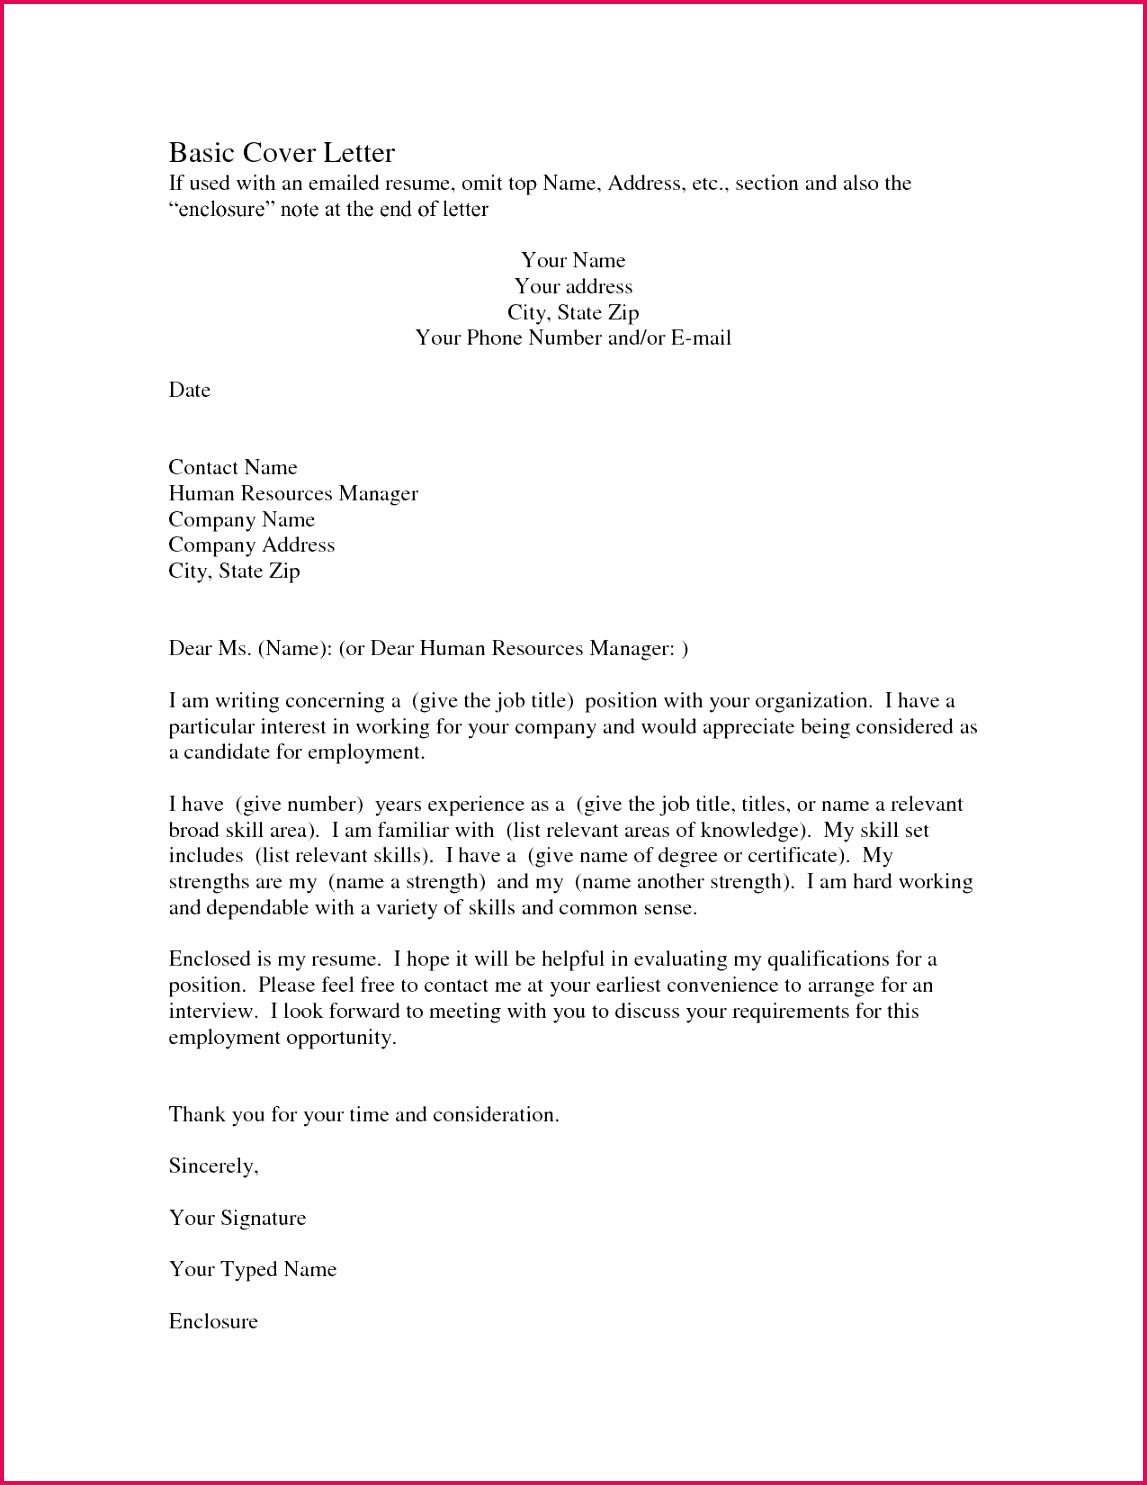 certificate of career letter luxury free 51 cover letter free template of certificate of career letter